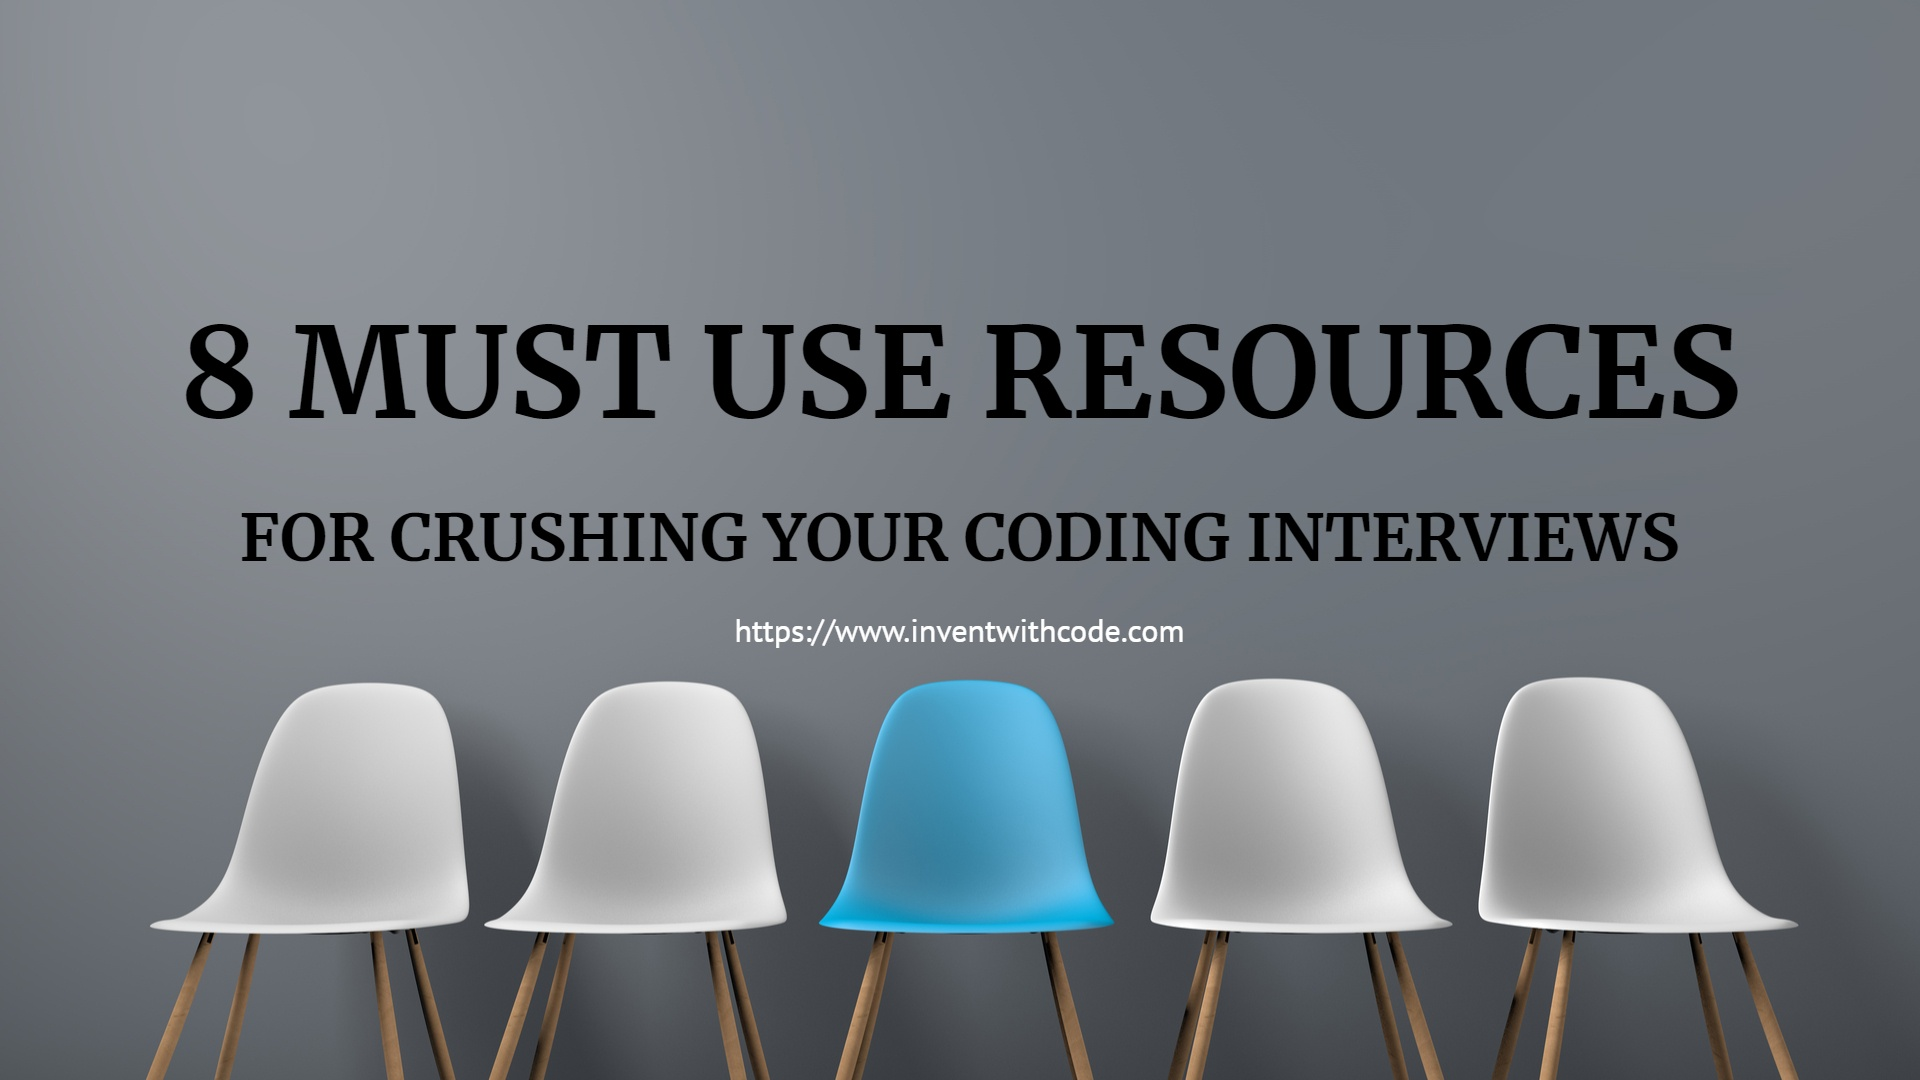 8 Must Use Resources For Crushing Your Coding Interviews